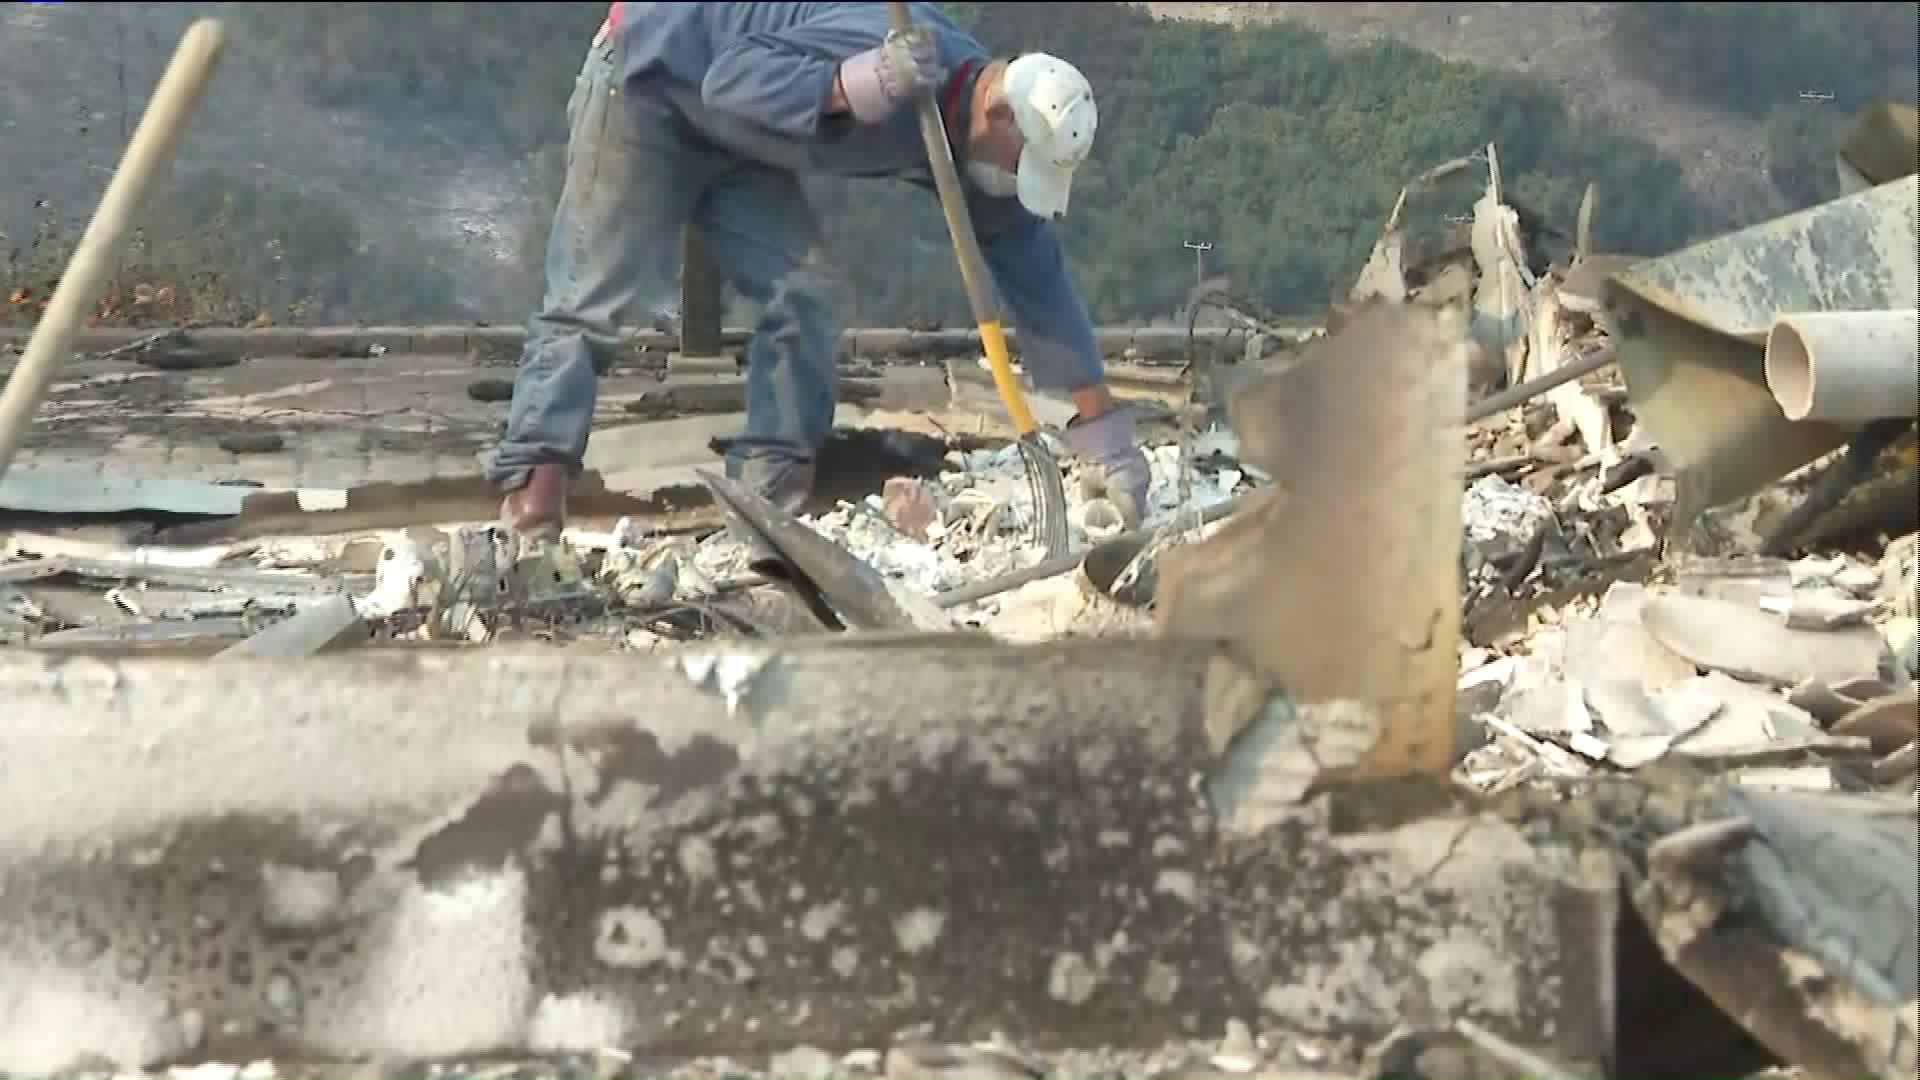 A man sifts through the remains of his home in Ventura Dec. 6, 2017. (Credit: KTLA)